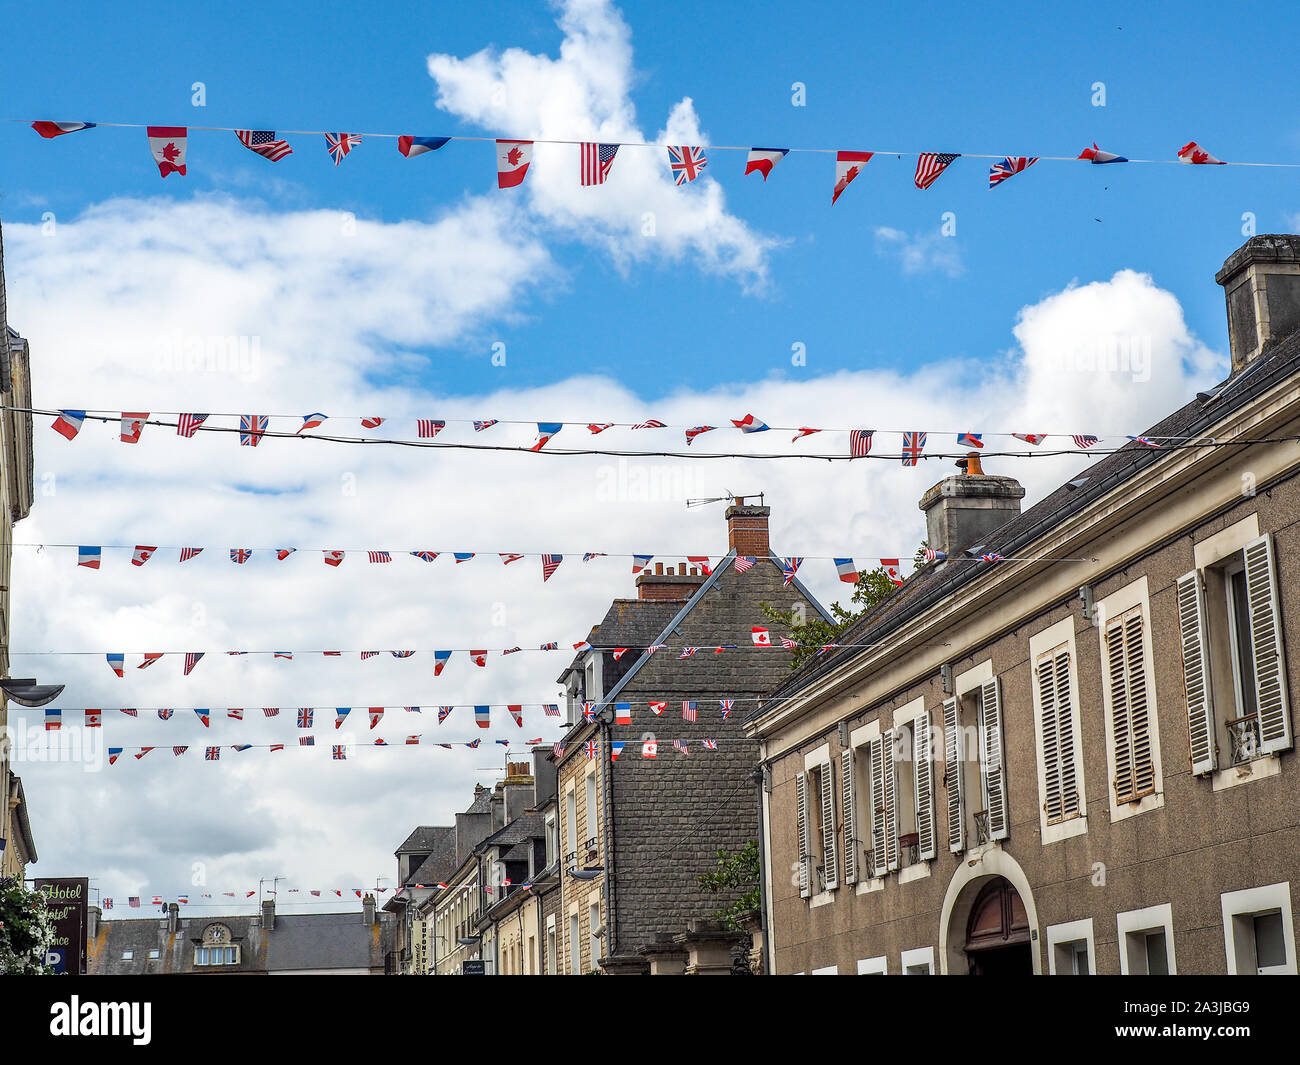 Allied flags flying over Normandy villages celebrating the 75th anniversary of the Normandy invasion. Stock Photo